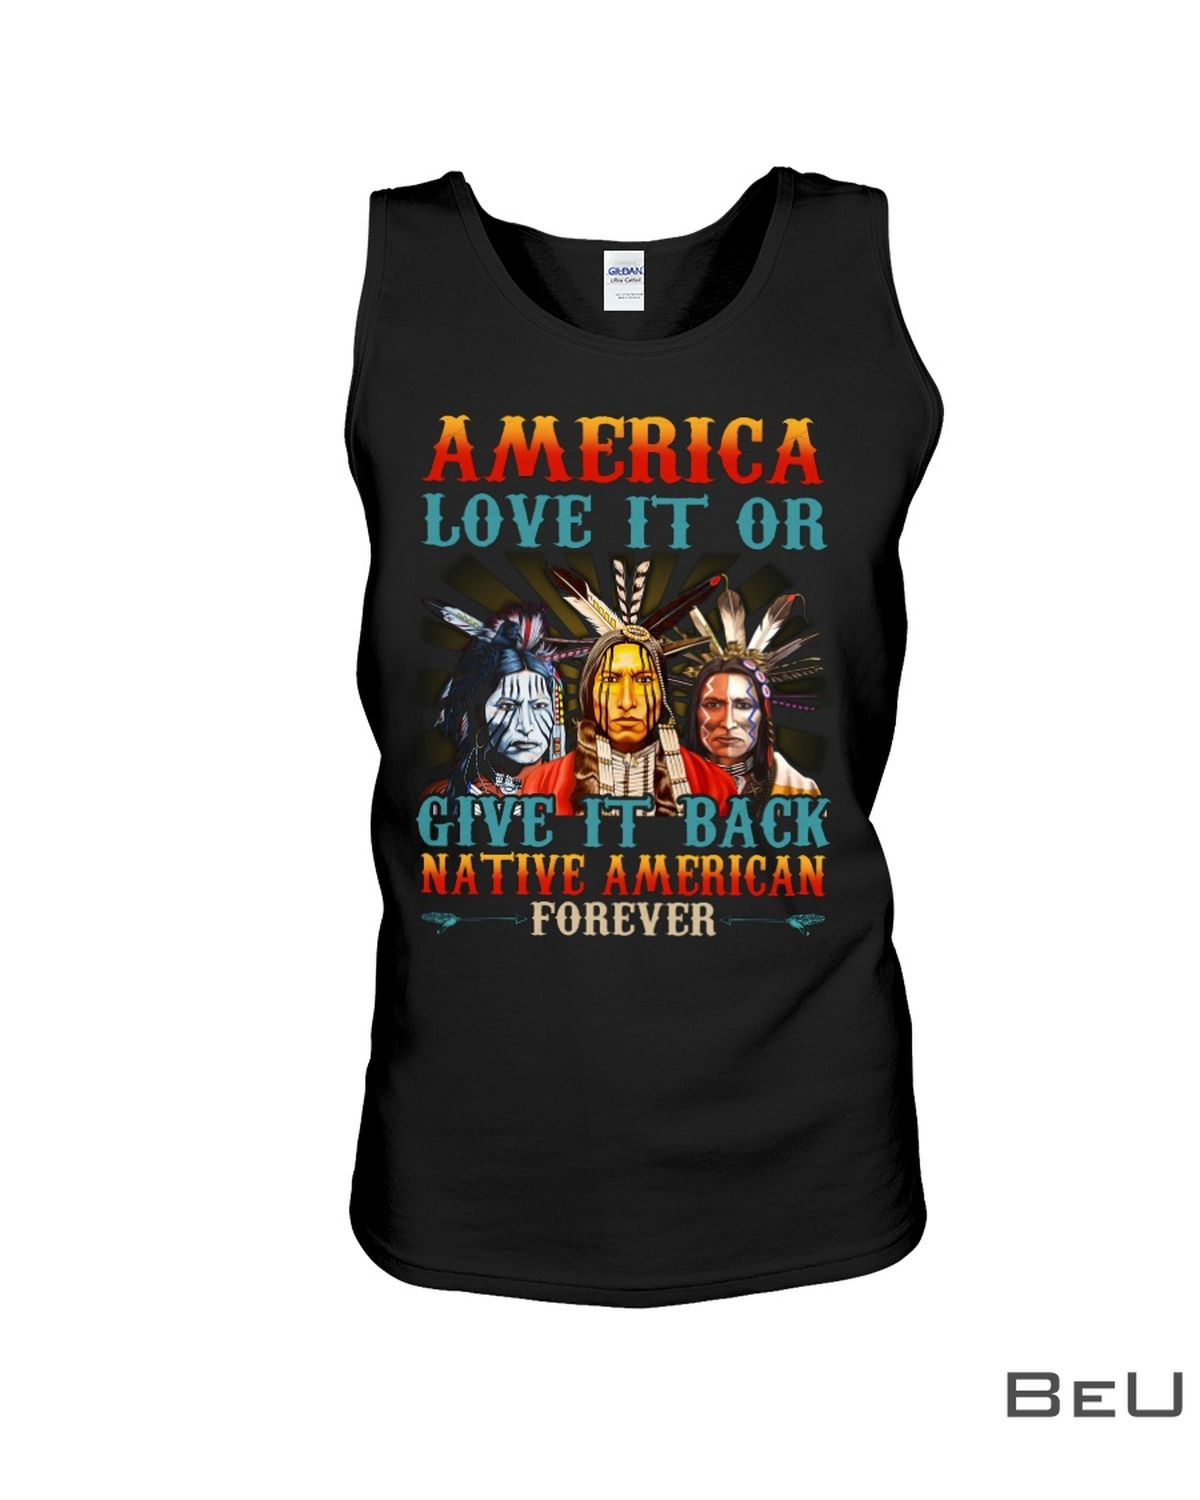 America Love It Or Give It Back Native American Forever Shirtc